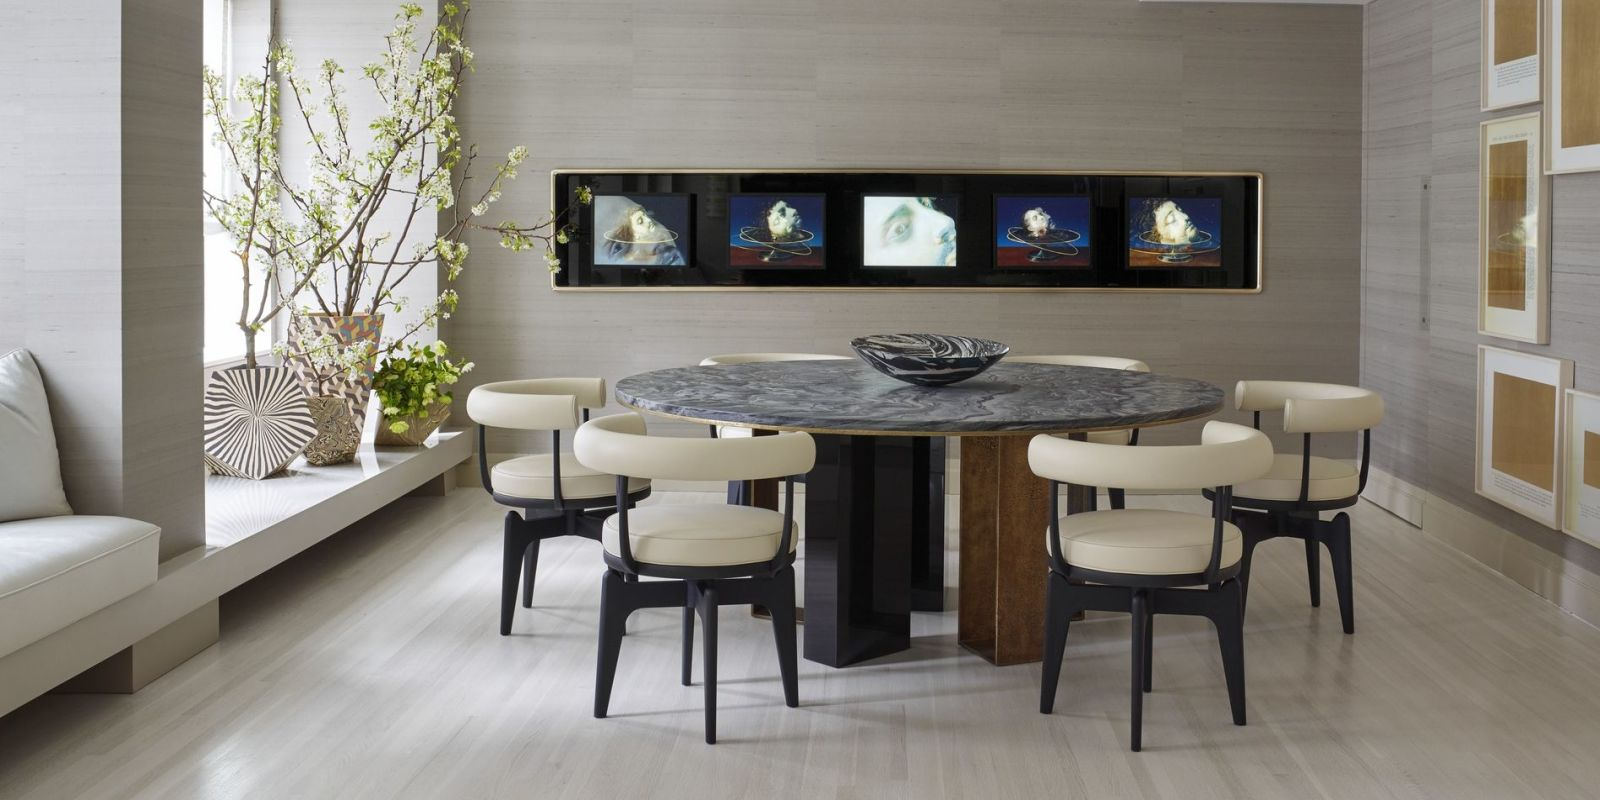 25 modern dining room decorating ideas contemporary for Modern dining room table decor